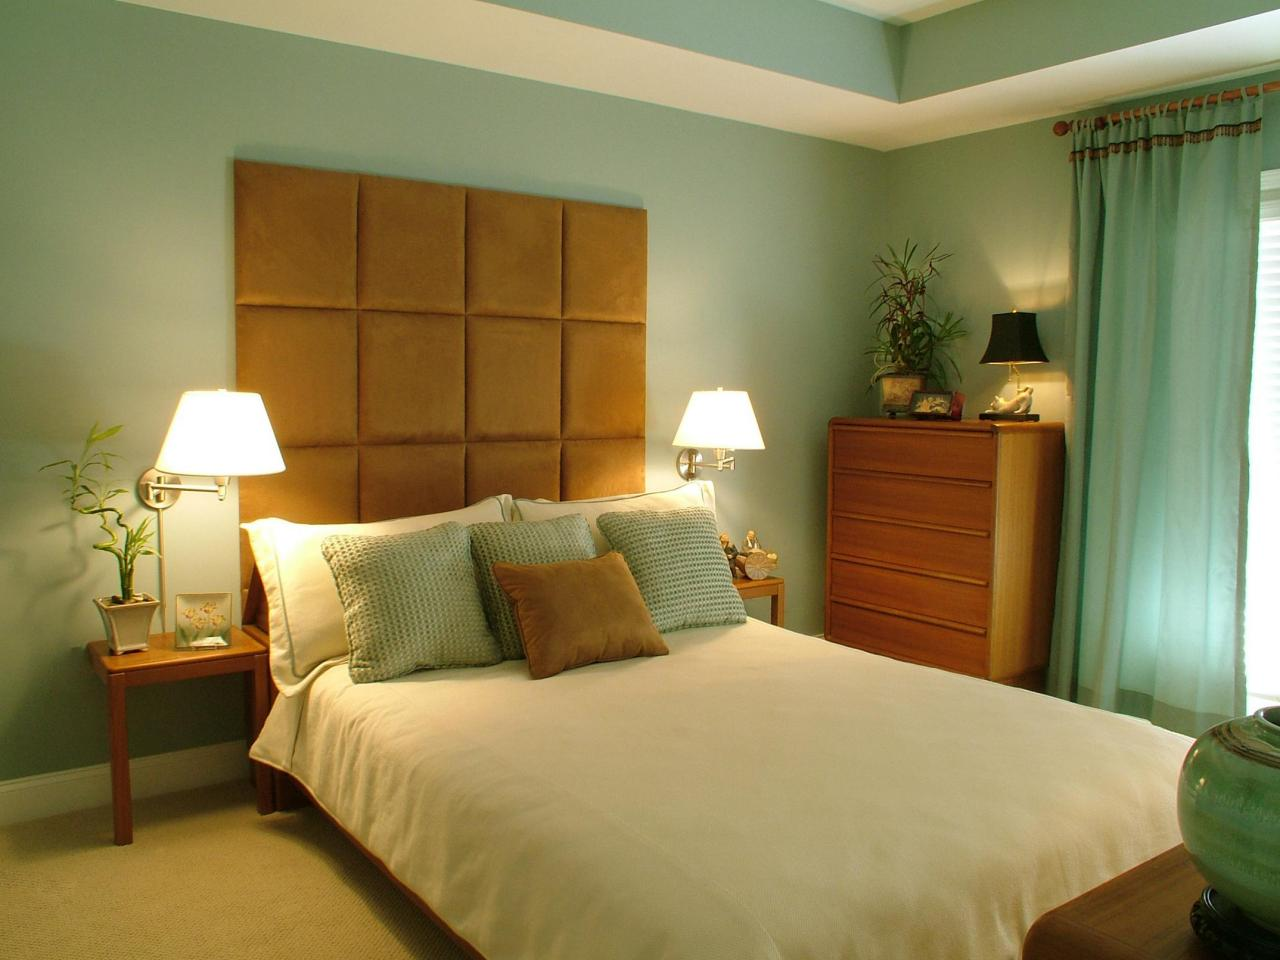 colors for a bedroom homesfeed color scheme for simple and warm bedroom decor idea which consists of light blue wall light